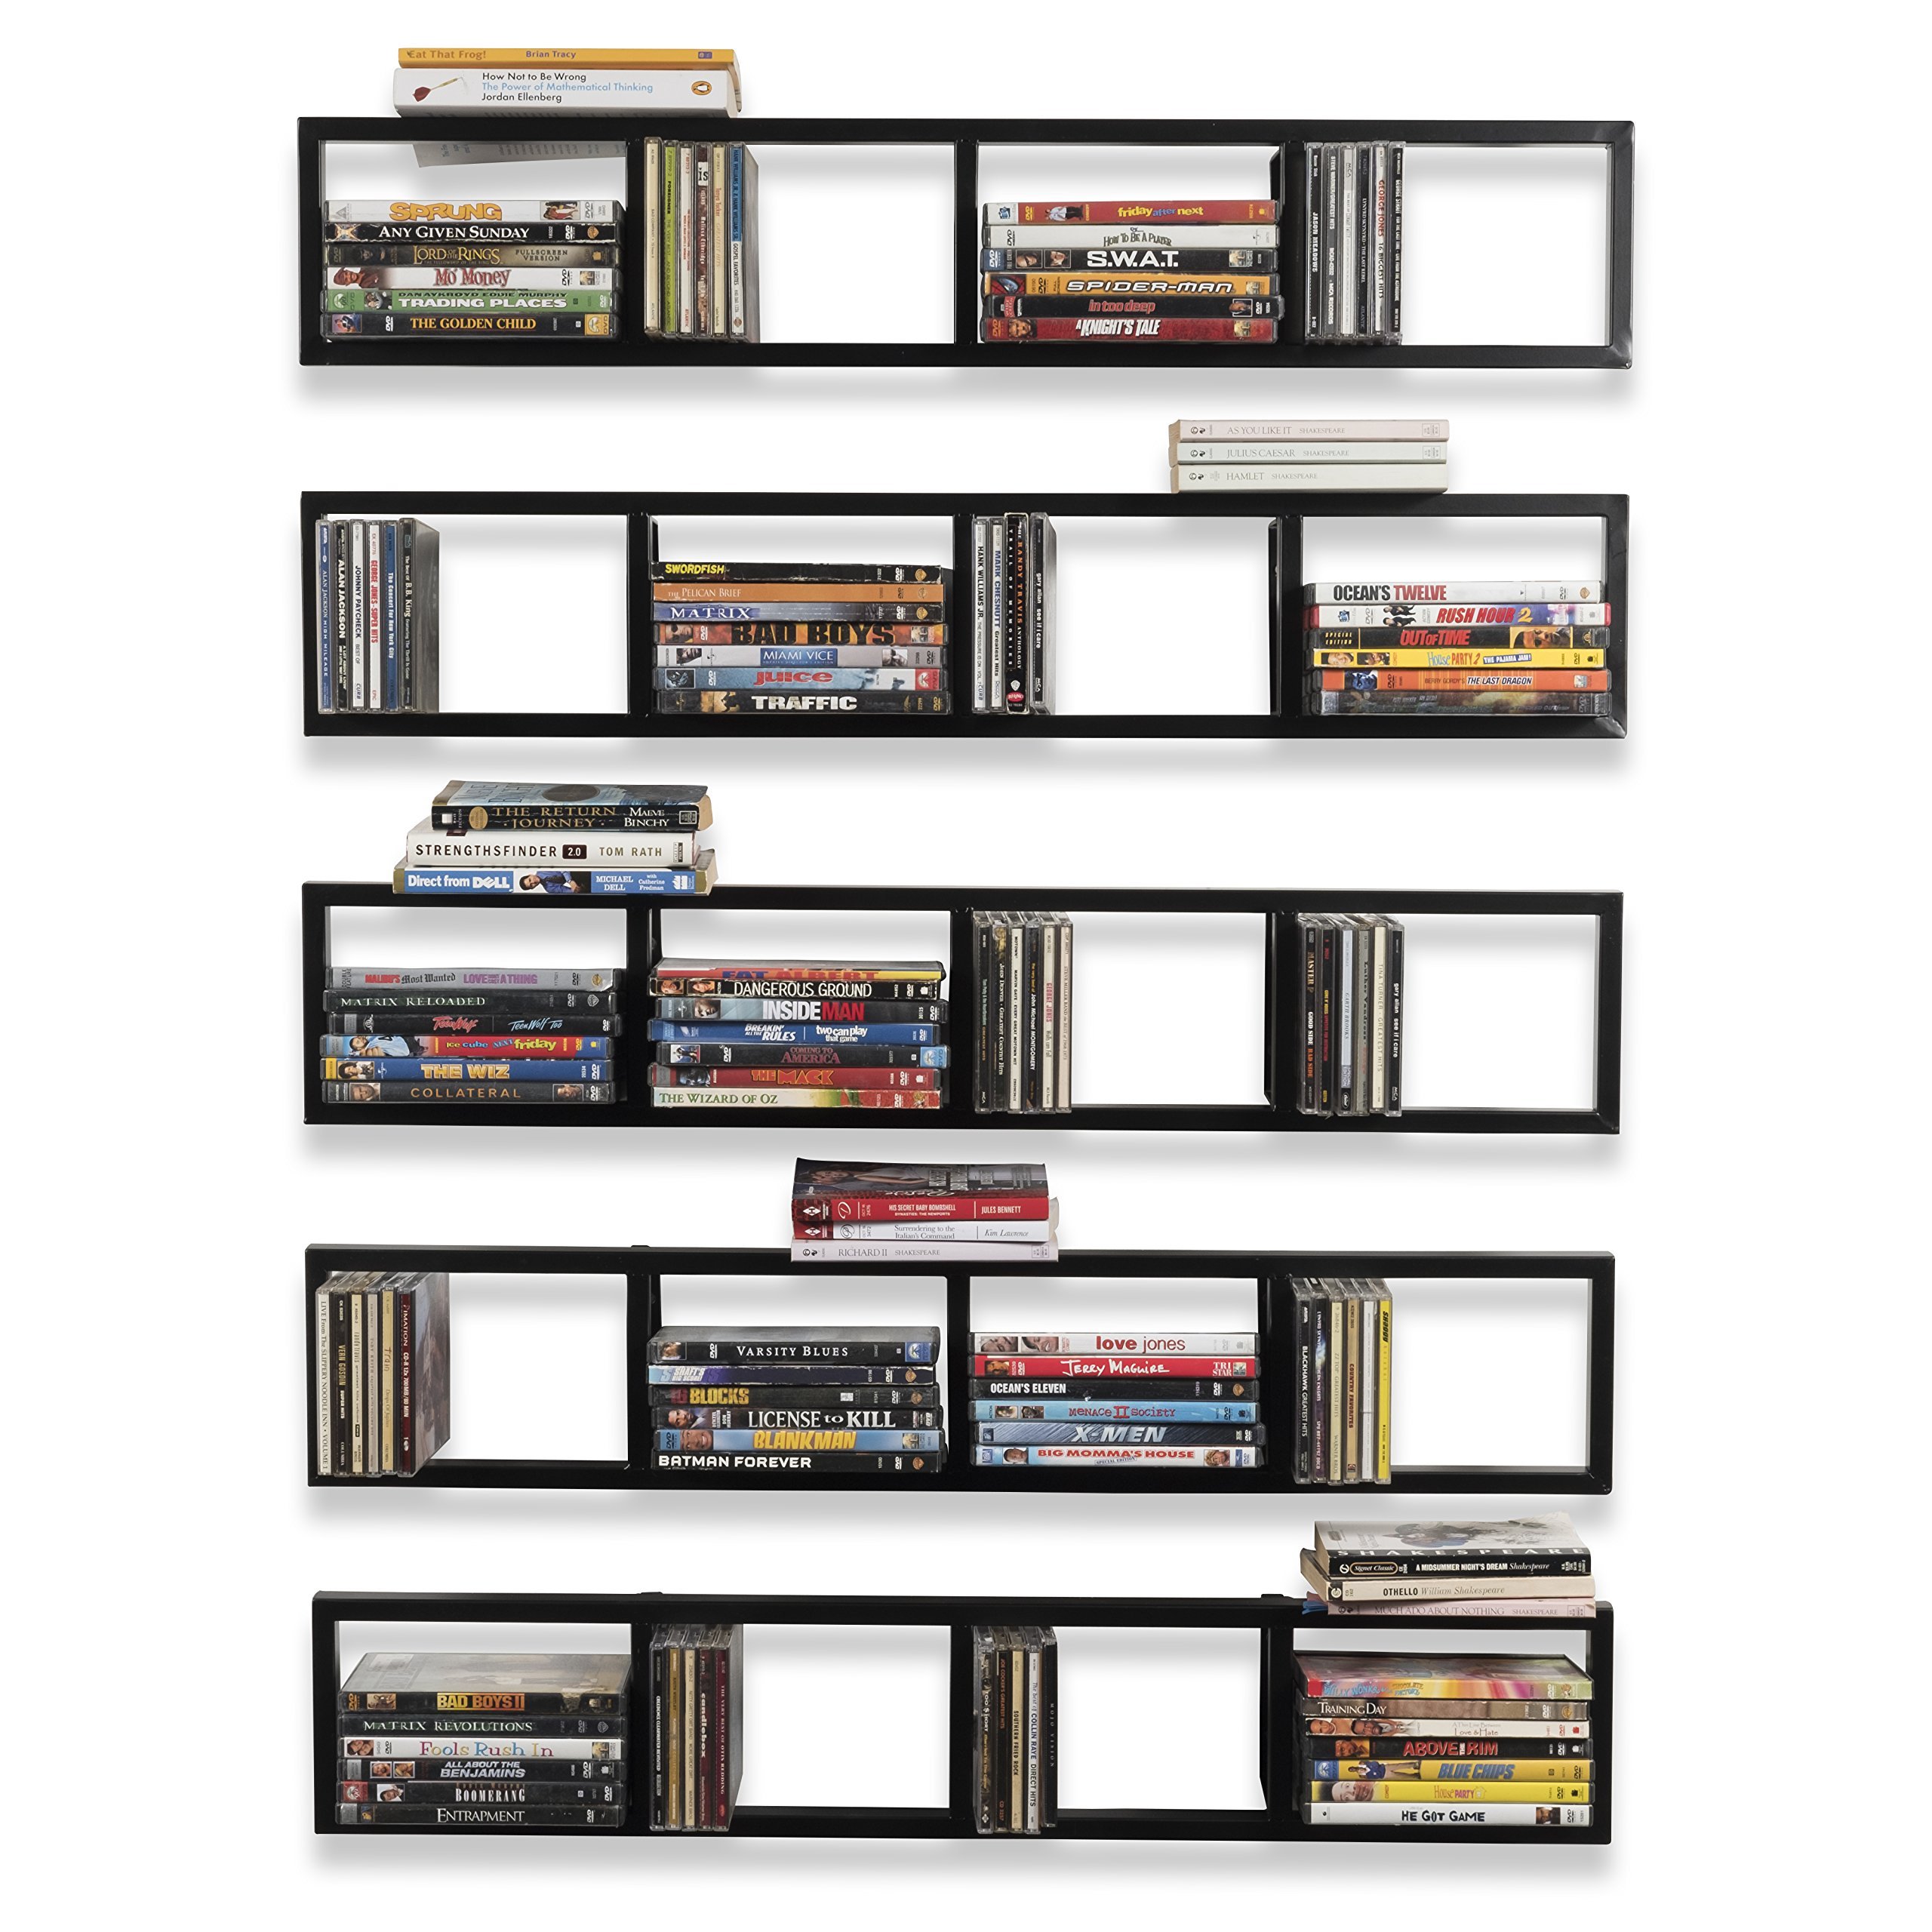 Wall Mount 34 Inch Media Storage Rack CD DVD Organizer Metal Floating Shelf Set of 5 Black by BHG